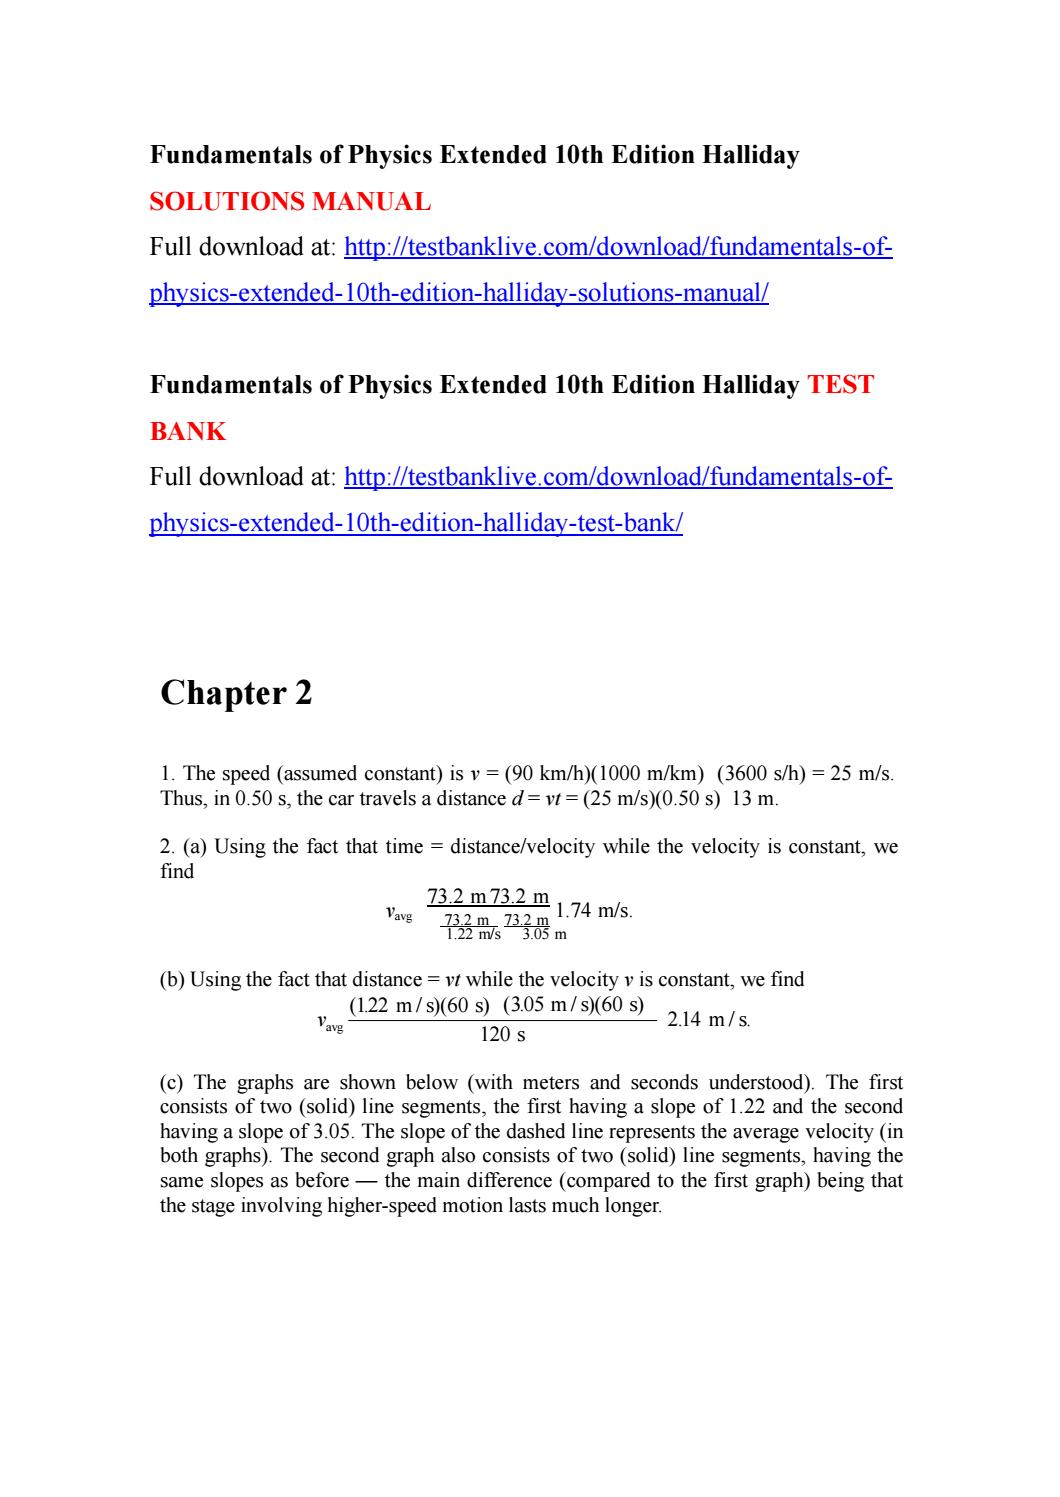 Fundamentals of physics extended 10th edition halliday solutions manual by  blatenny - issuu